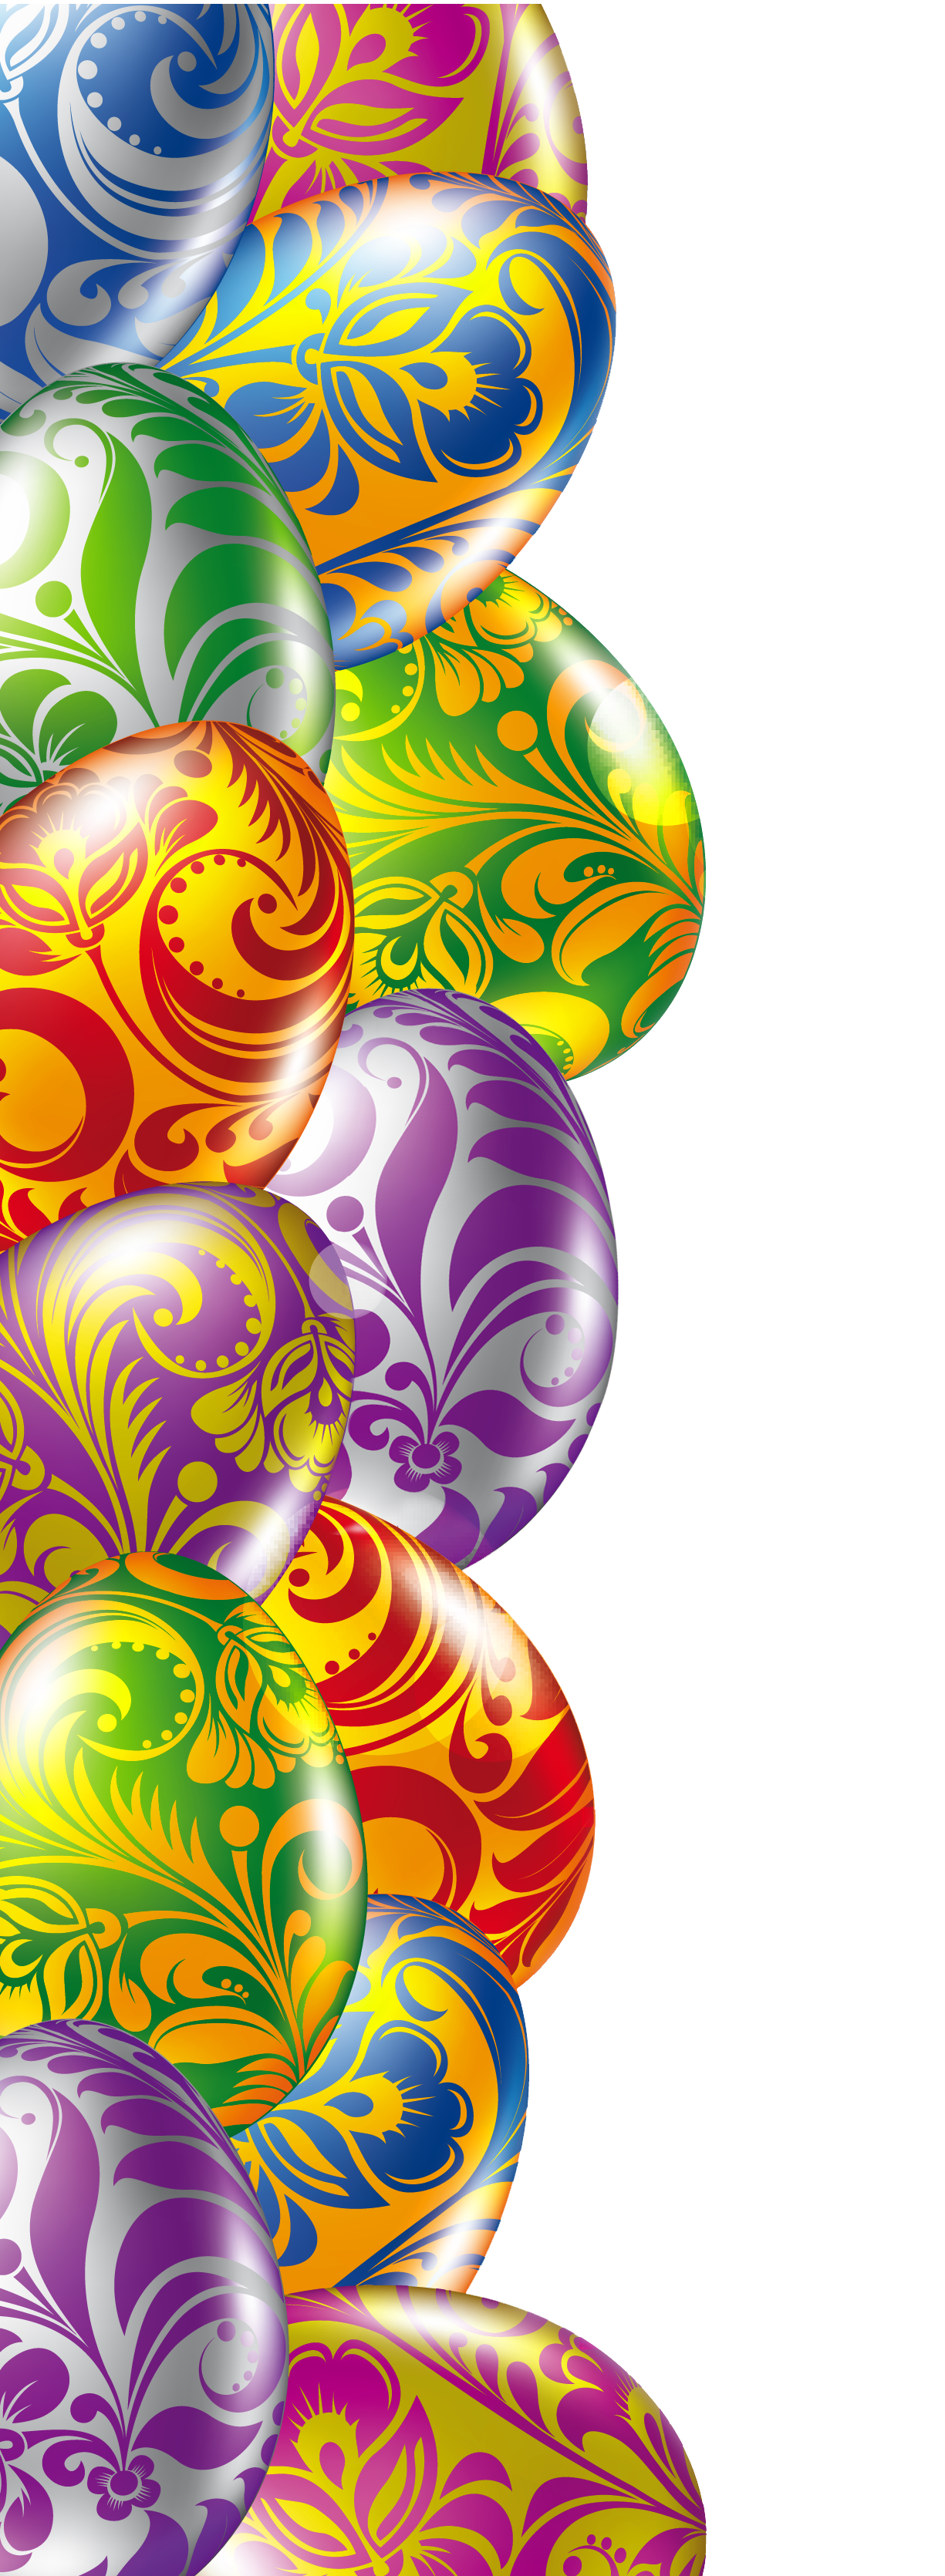 Easter border png. Eggs transparent picture crafting